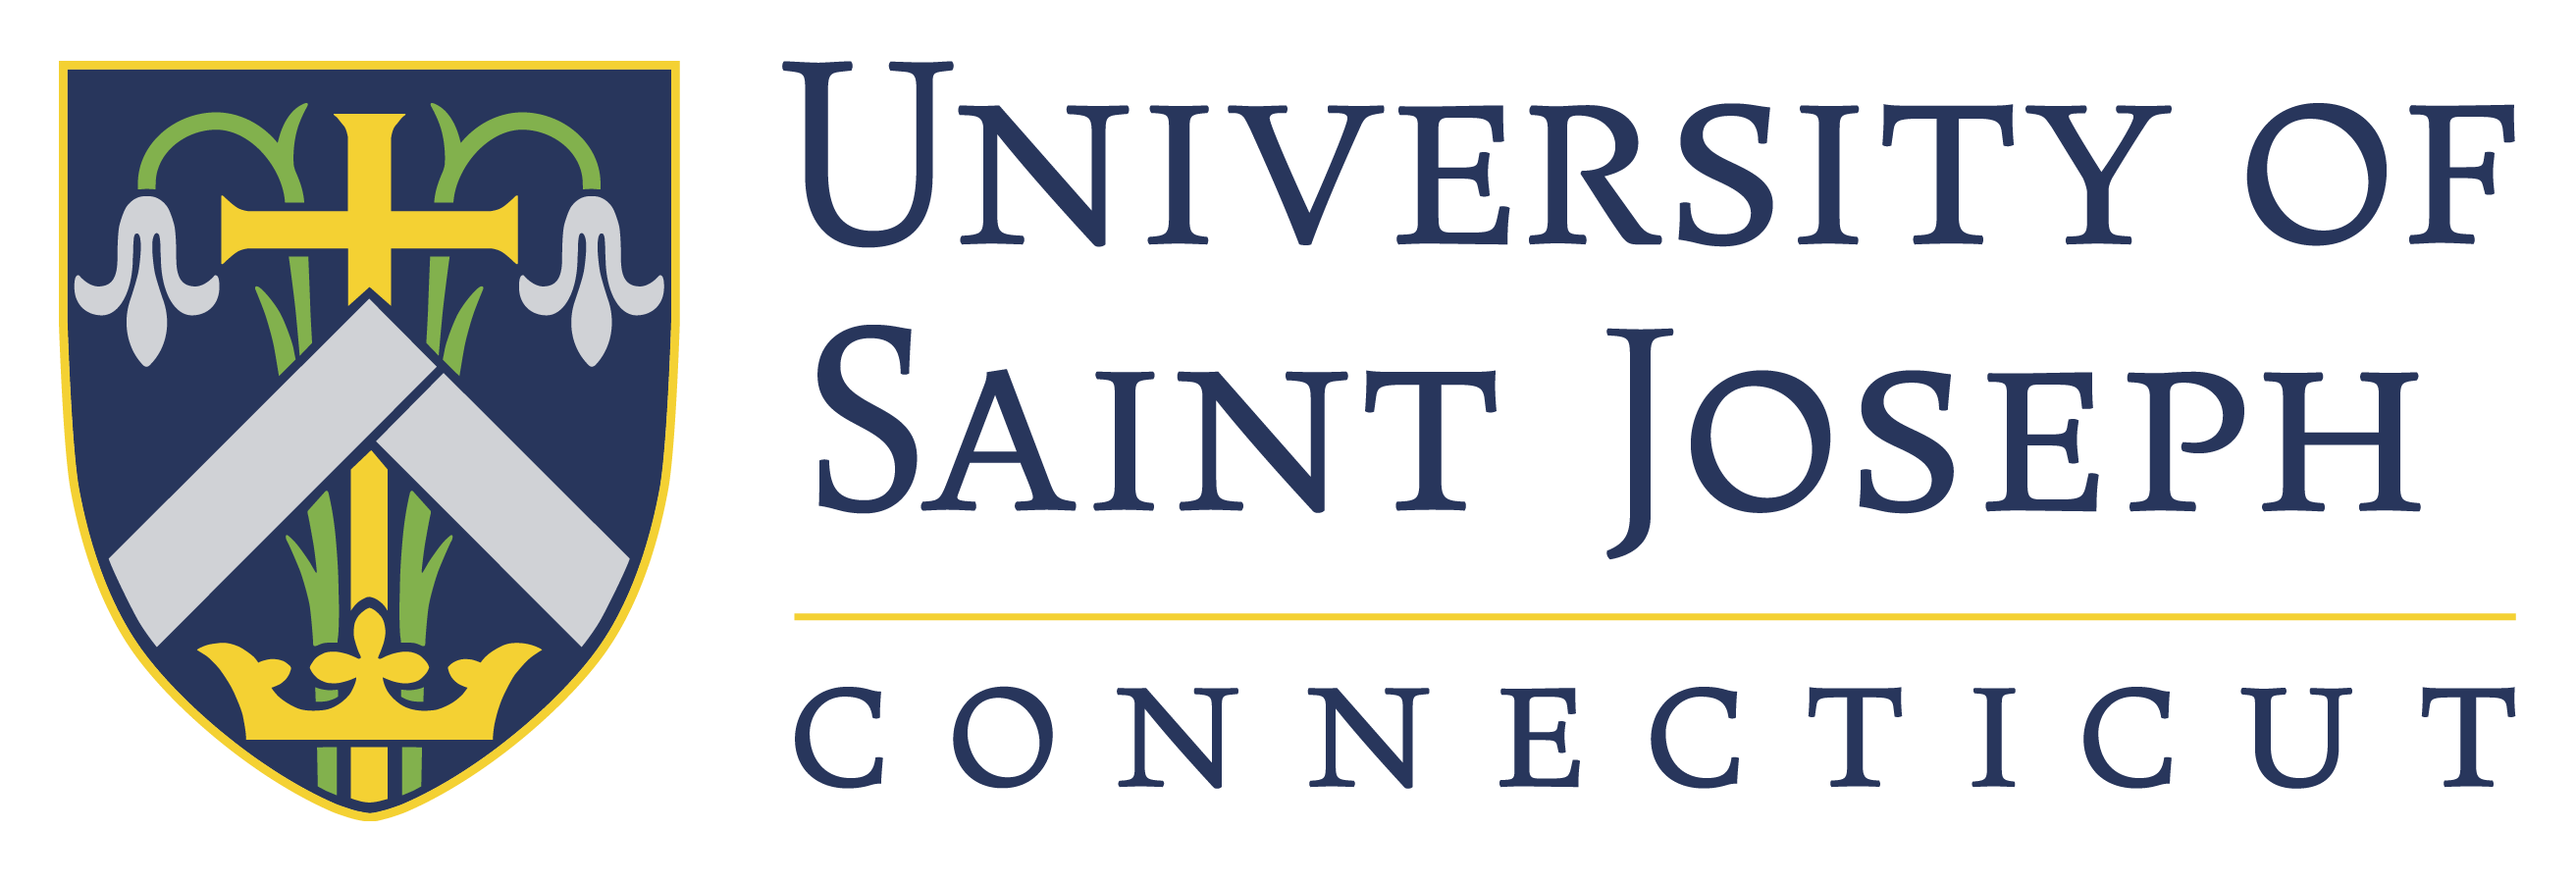 university of saint joseph connecticut logo